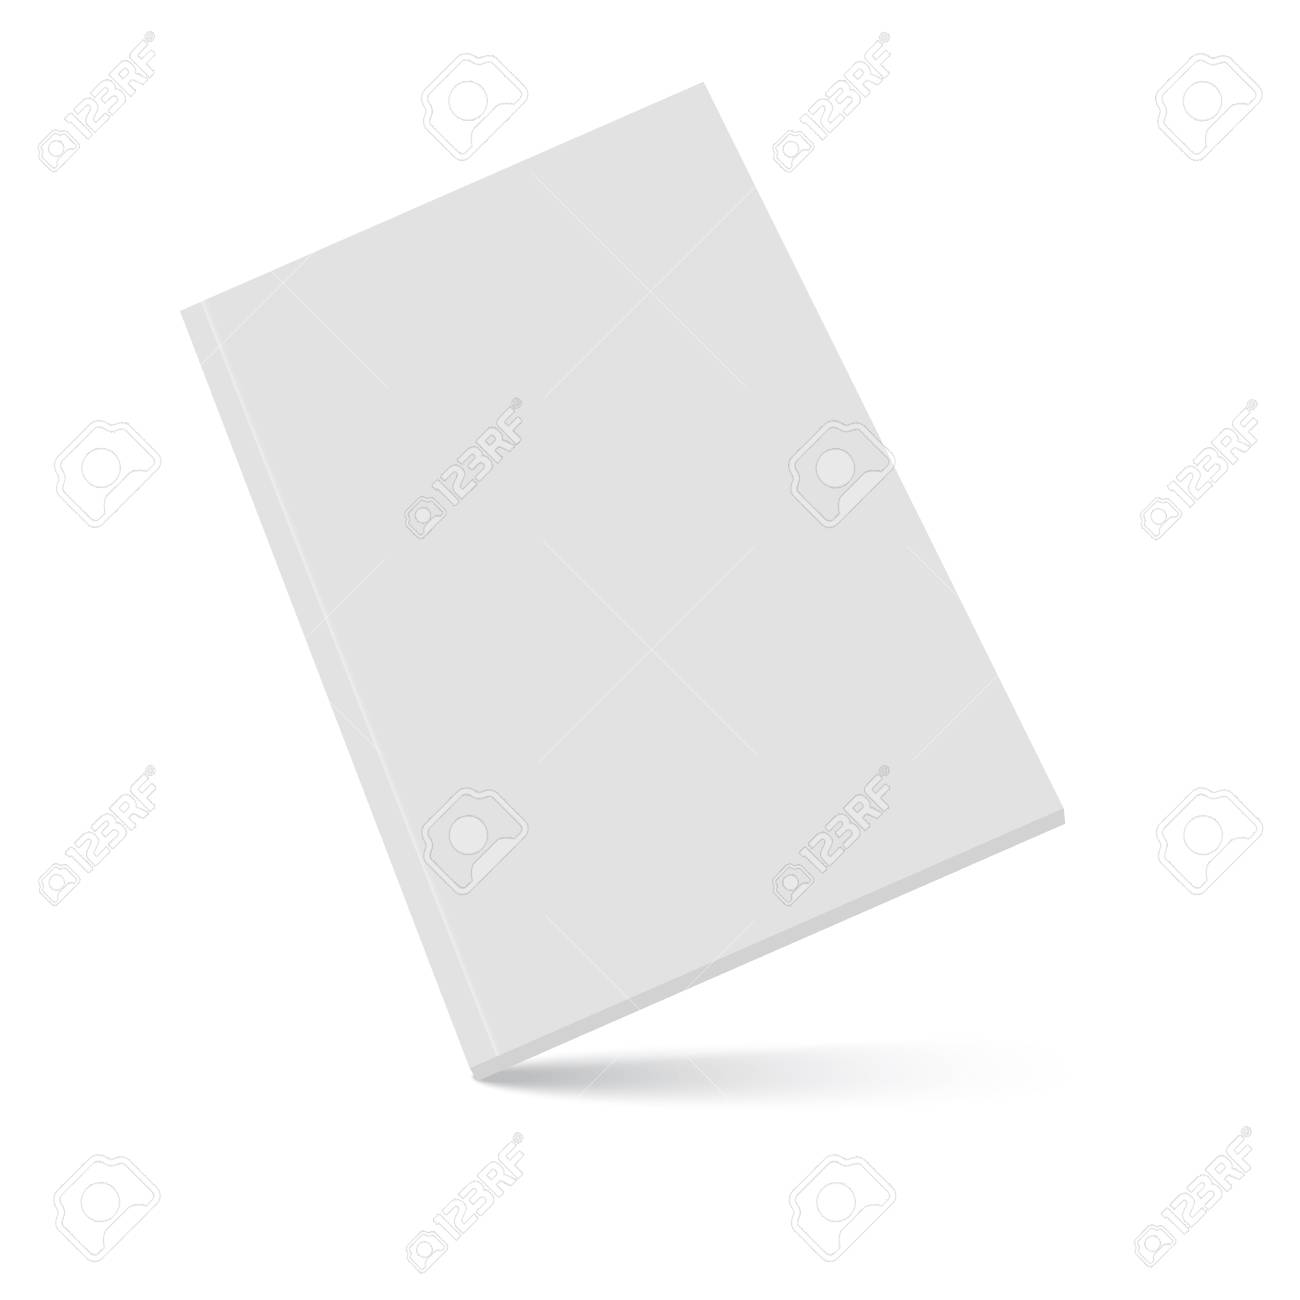 Closed book, cover. Mockup for the cover design. High detail. Isolated on white background. - 103787534